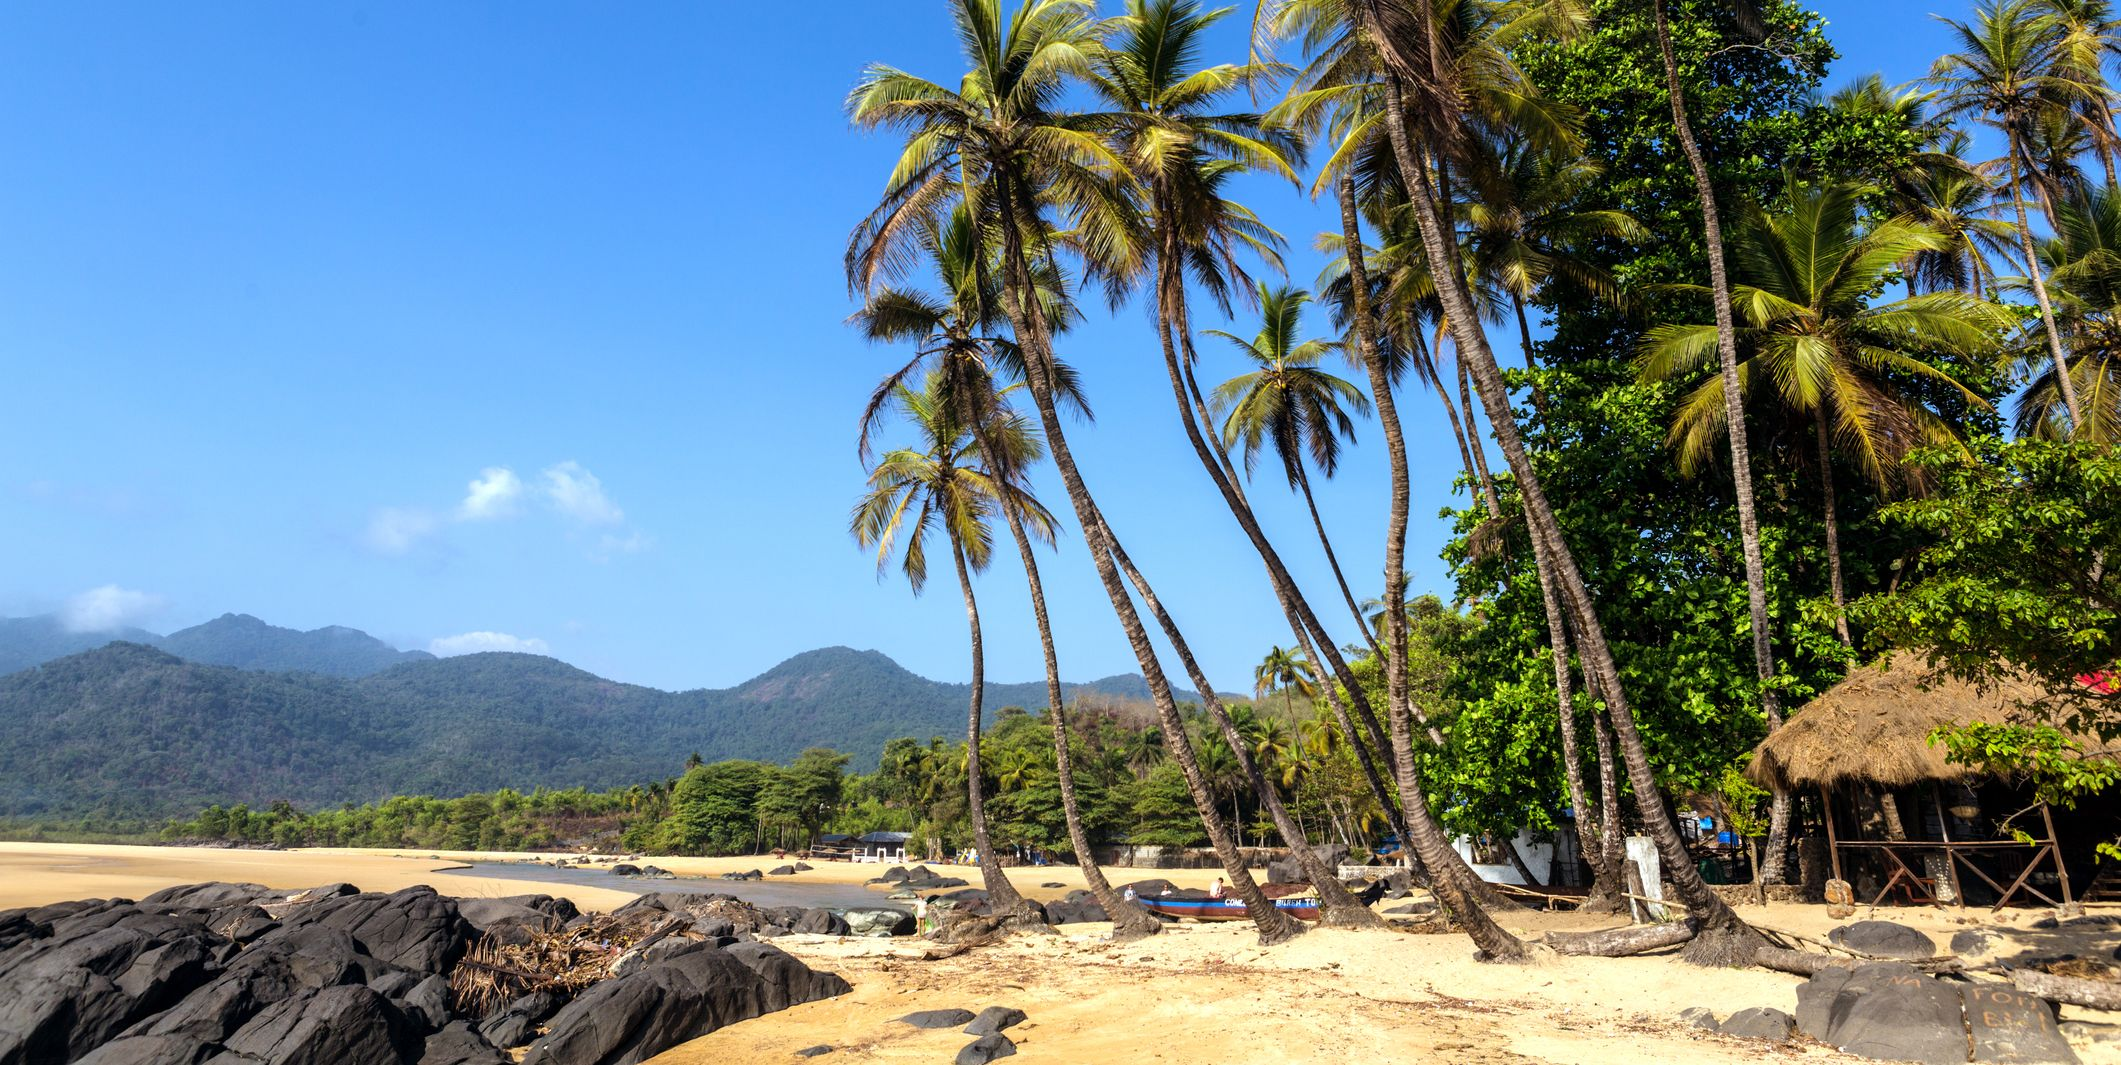 5 Reasons Why Sierra Leone Is The World's Fastest-Growing Travel Destination